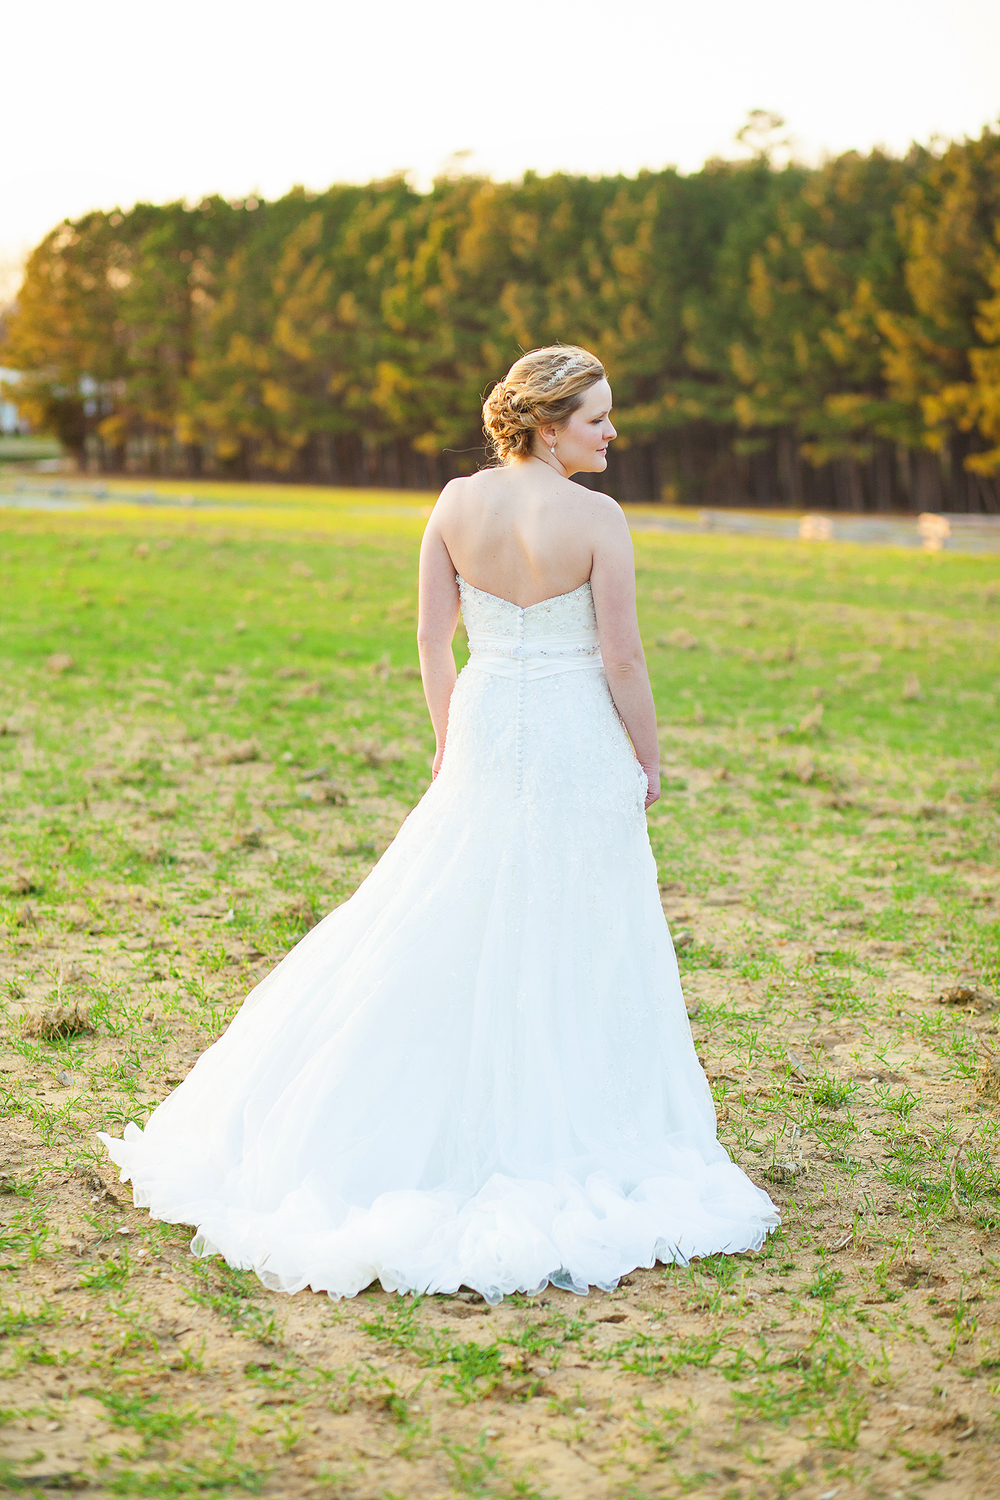 Romantic Bridal Portrait Poses